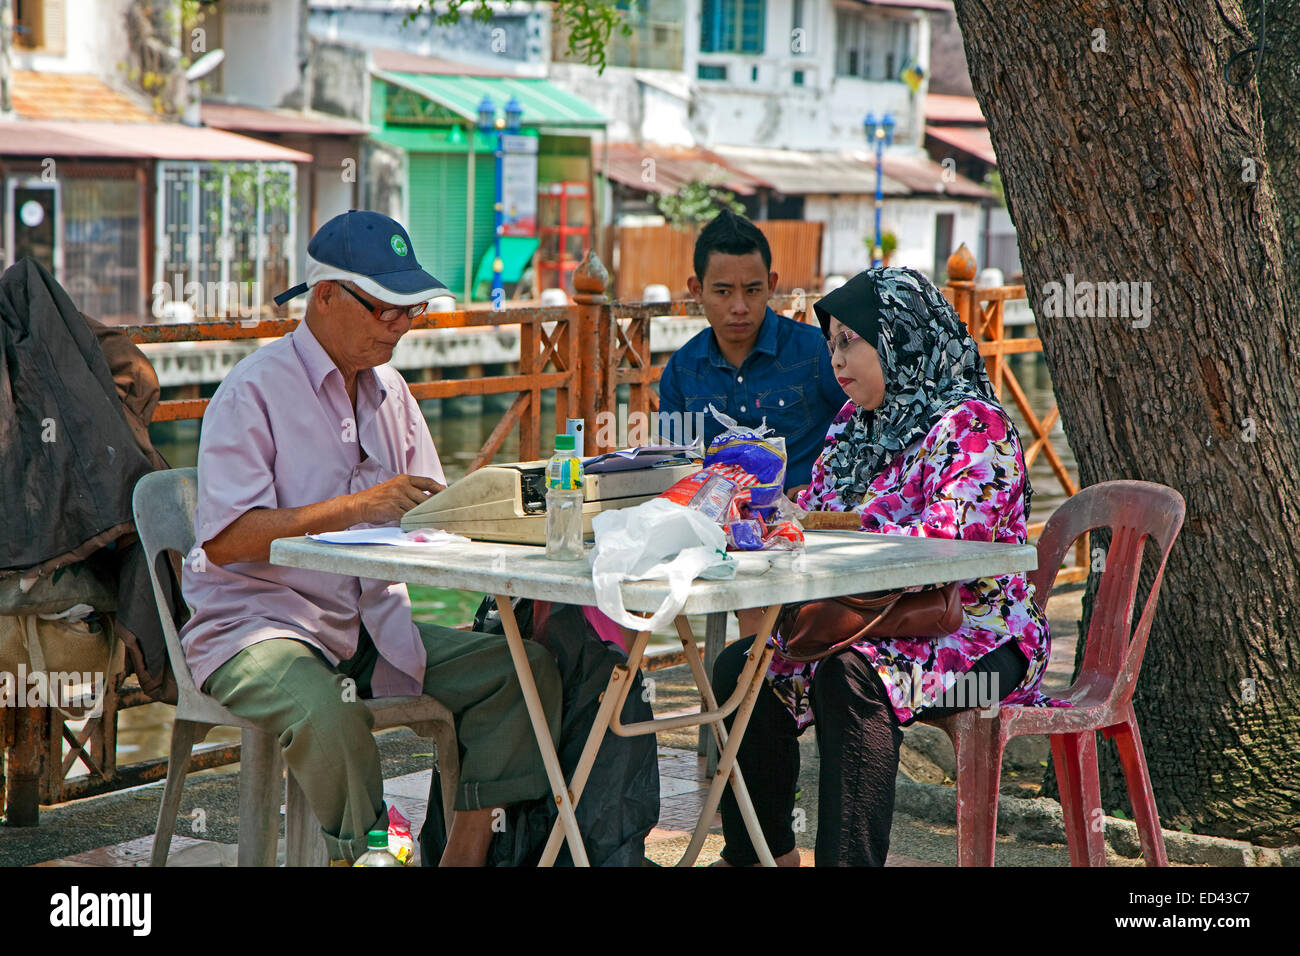 Elderly Malaysian man typing letter on portable typewriter in the streets of Malacca, Malaysia Stock Photo